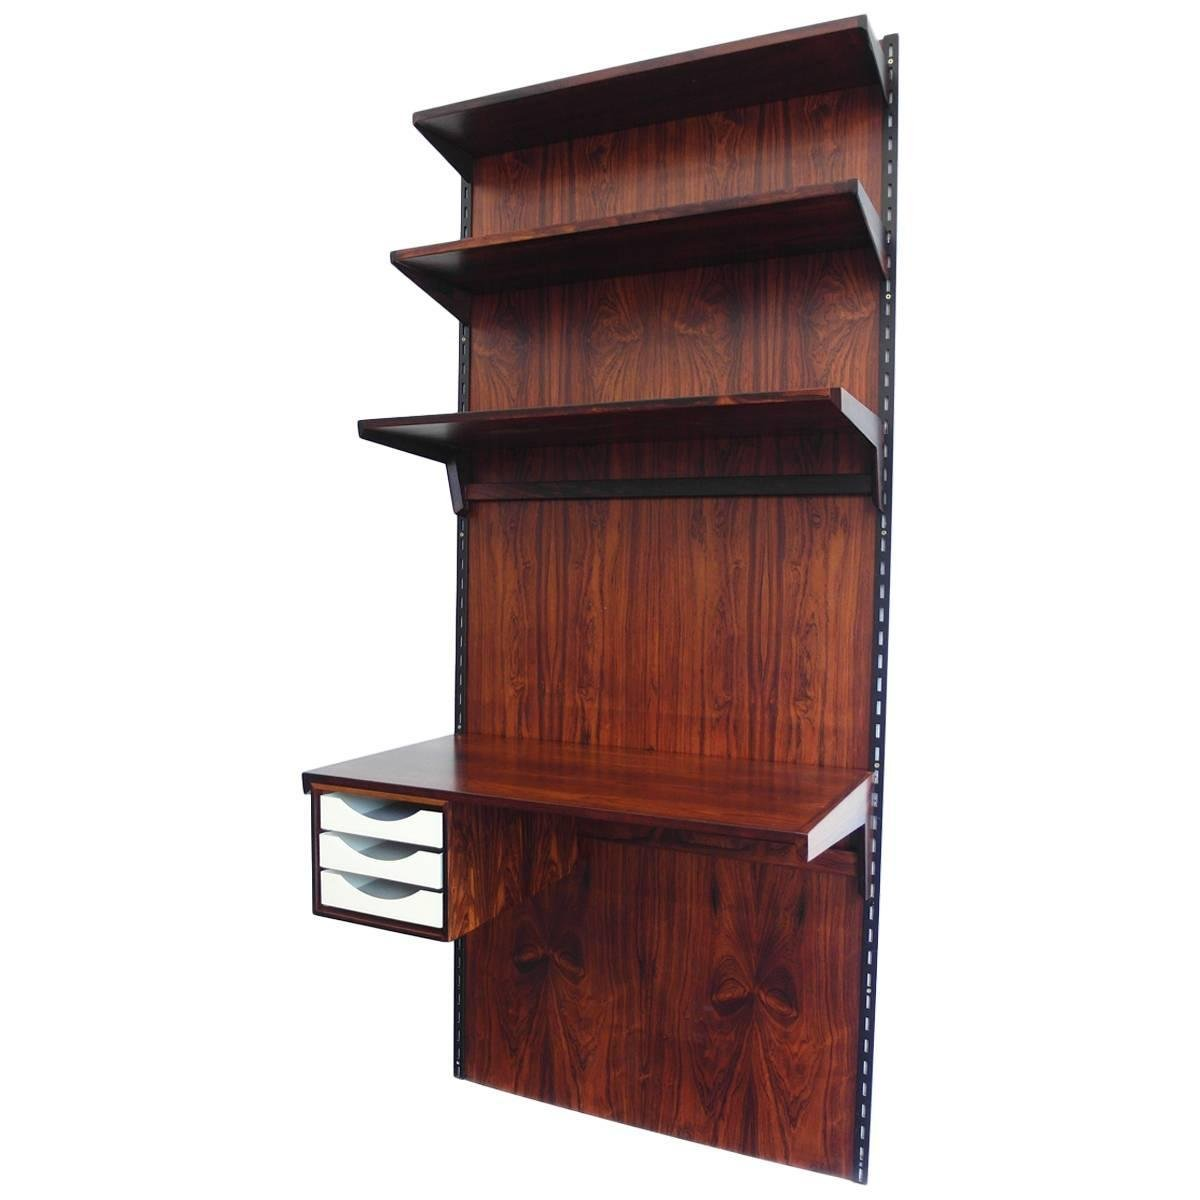 Rosewood Wall Mounted Shelving Unit With Desk By Kai